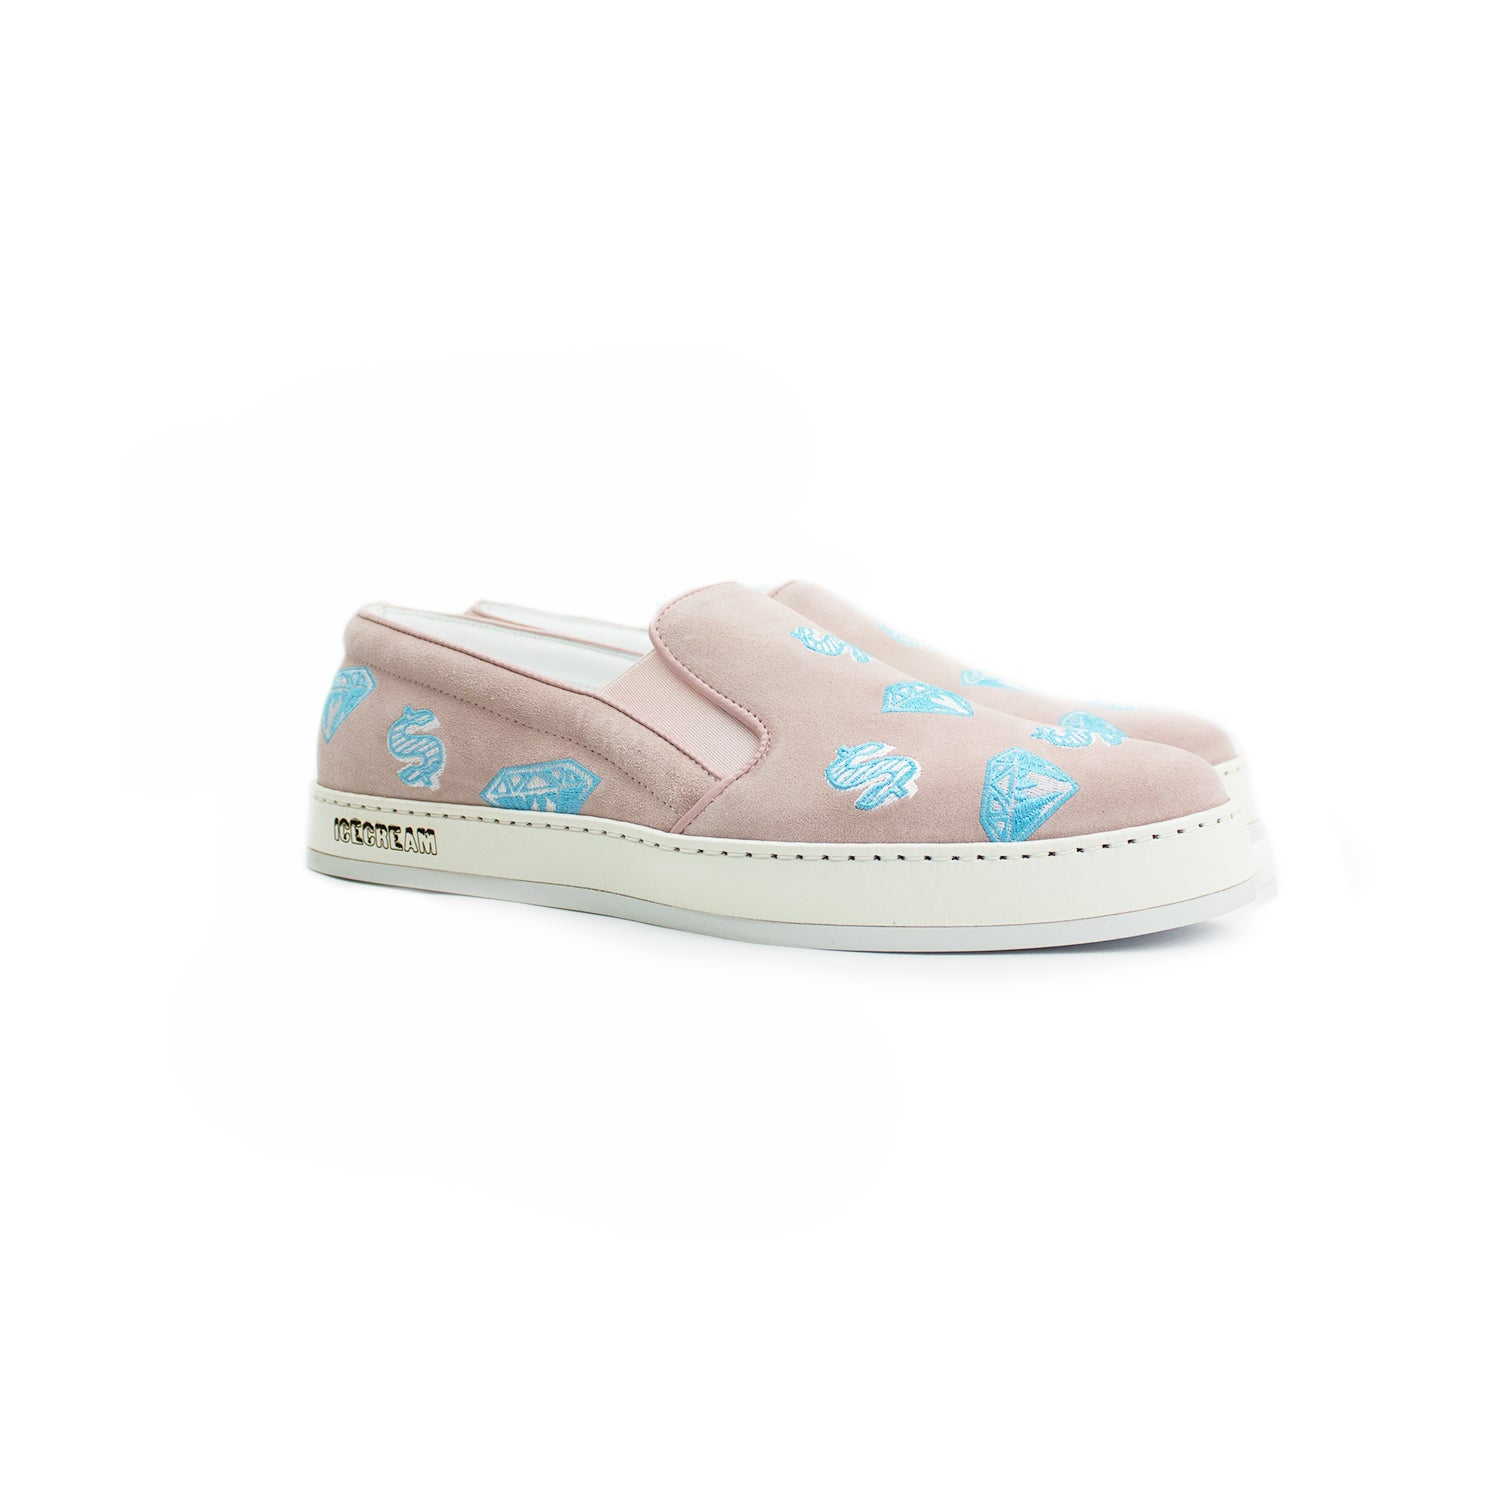 ICECREAM 003 SLIP ON